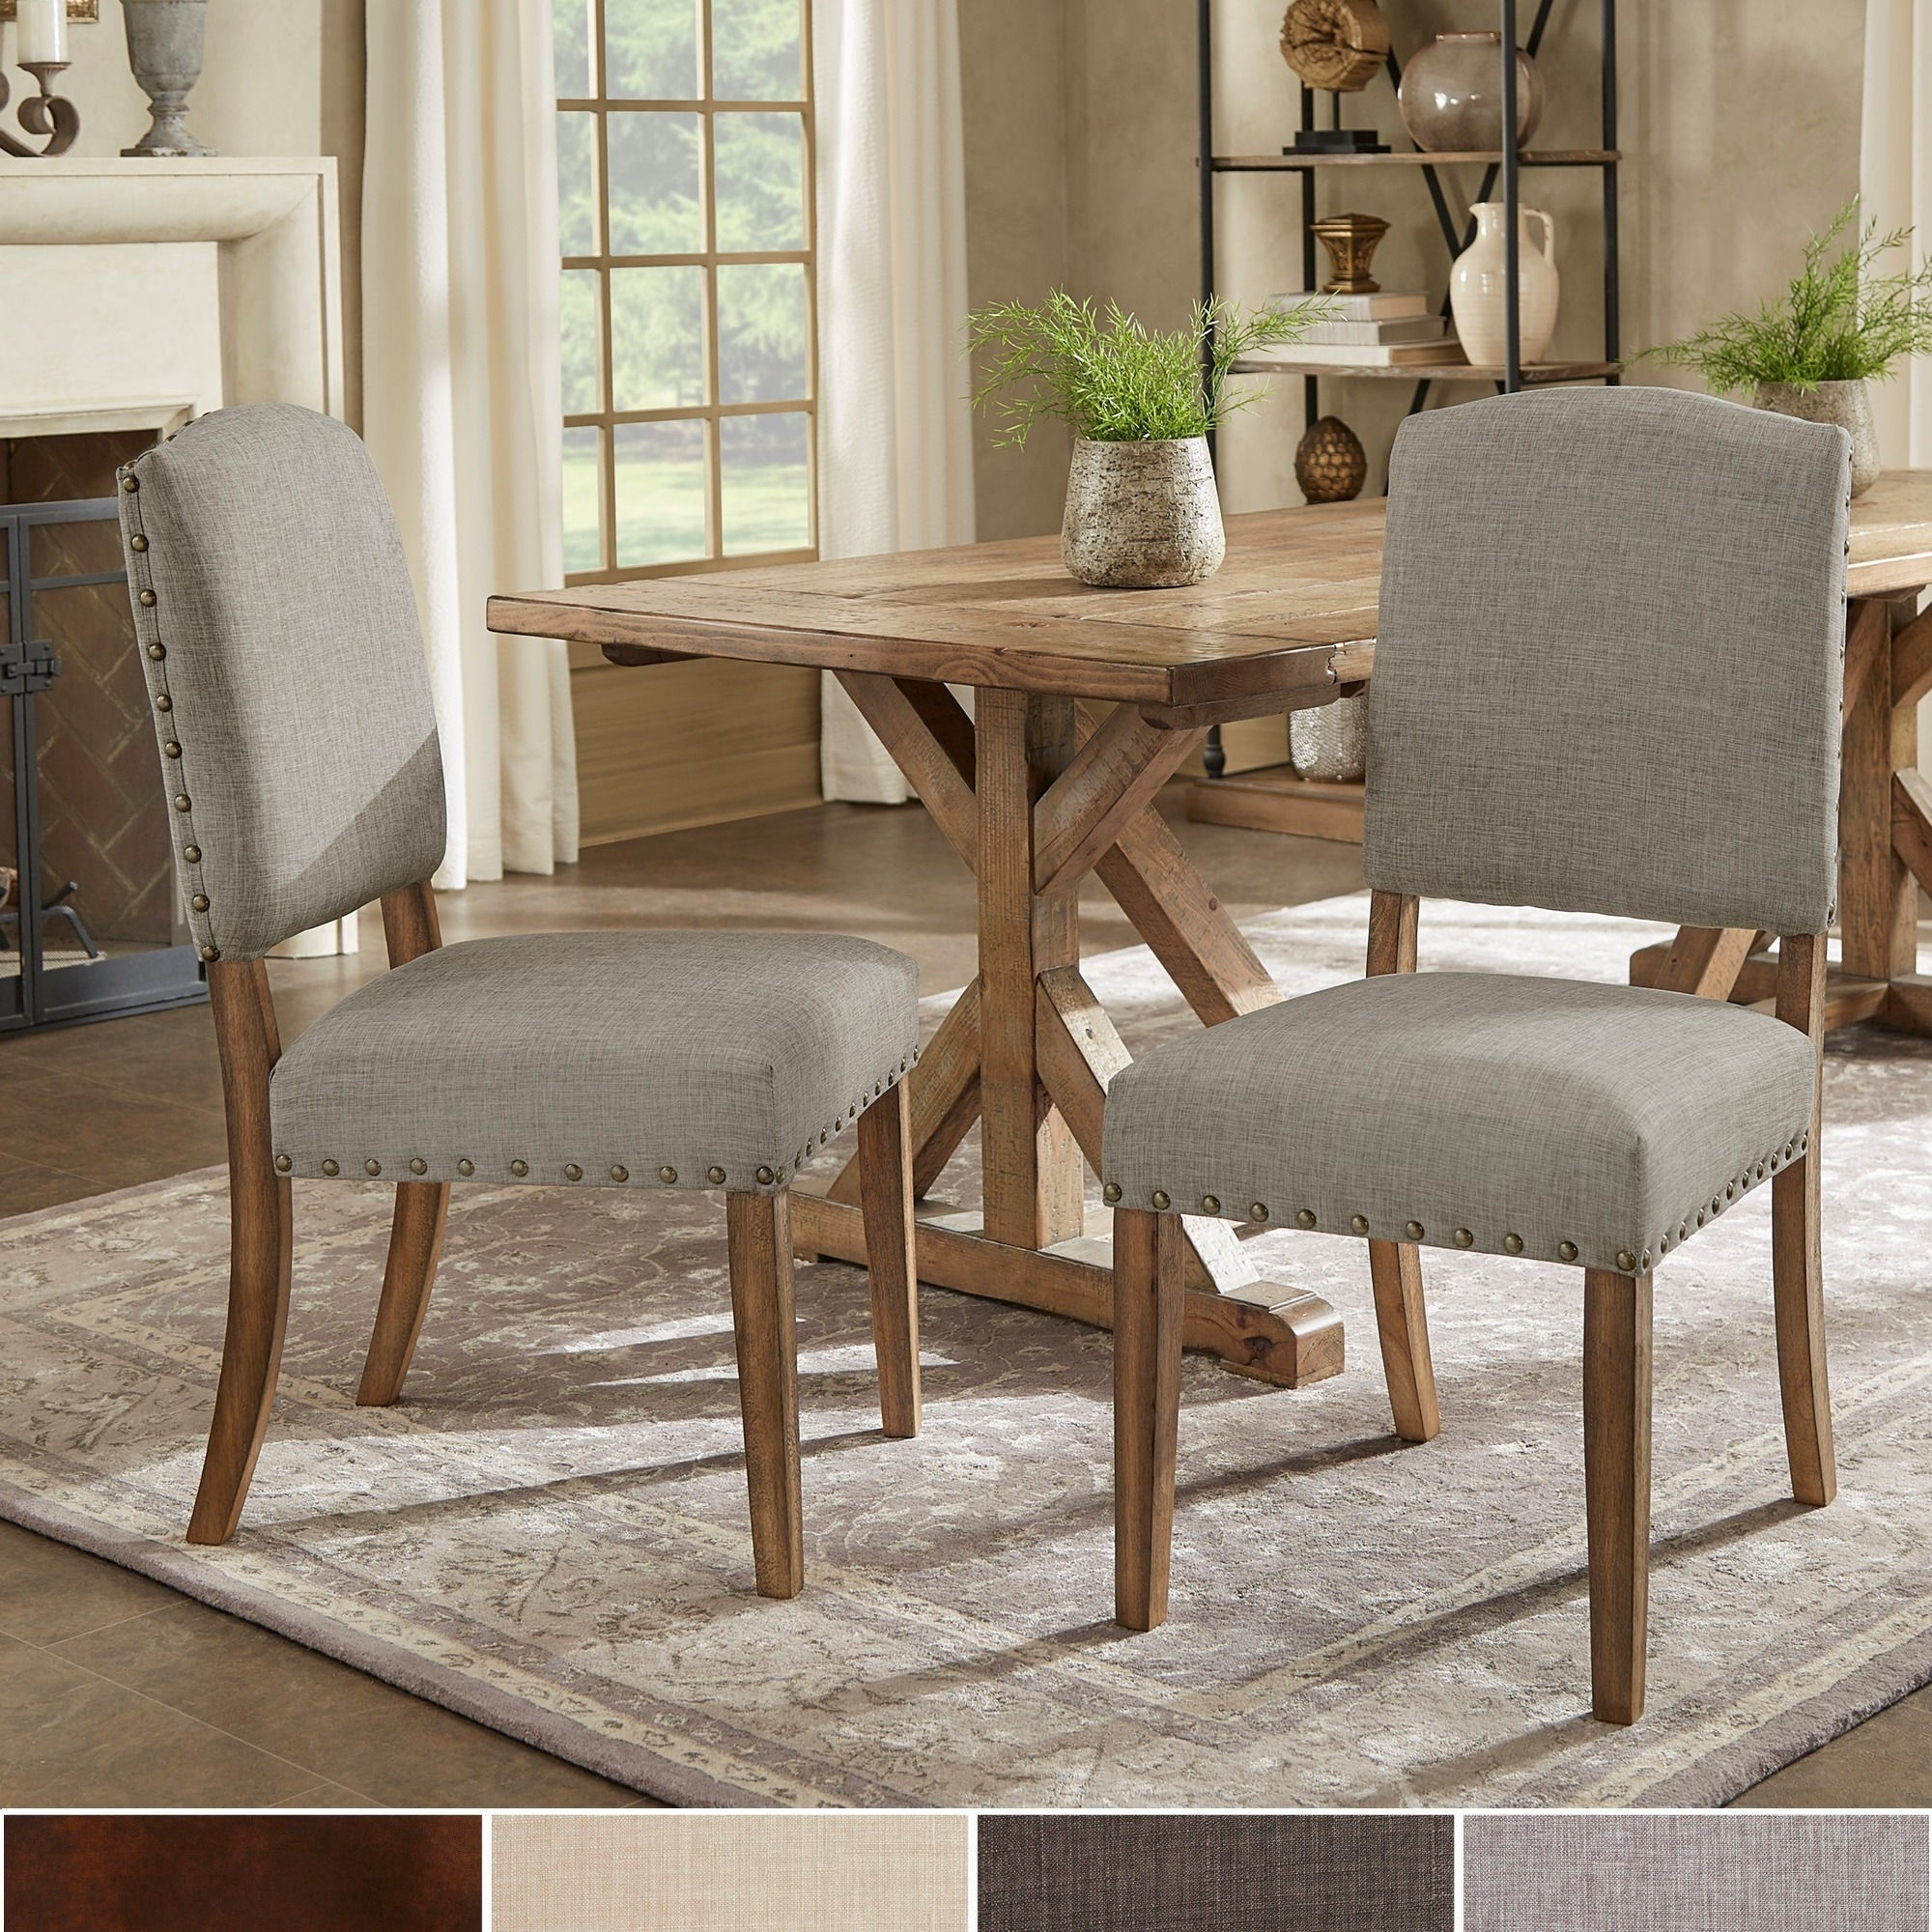 Shop Benchwright Premium Nailhead Upholstered Dining Chairs (Set Of Within 2017 Candice Ii 5 Piece Round Dining Sets (Image 15 of 20)